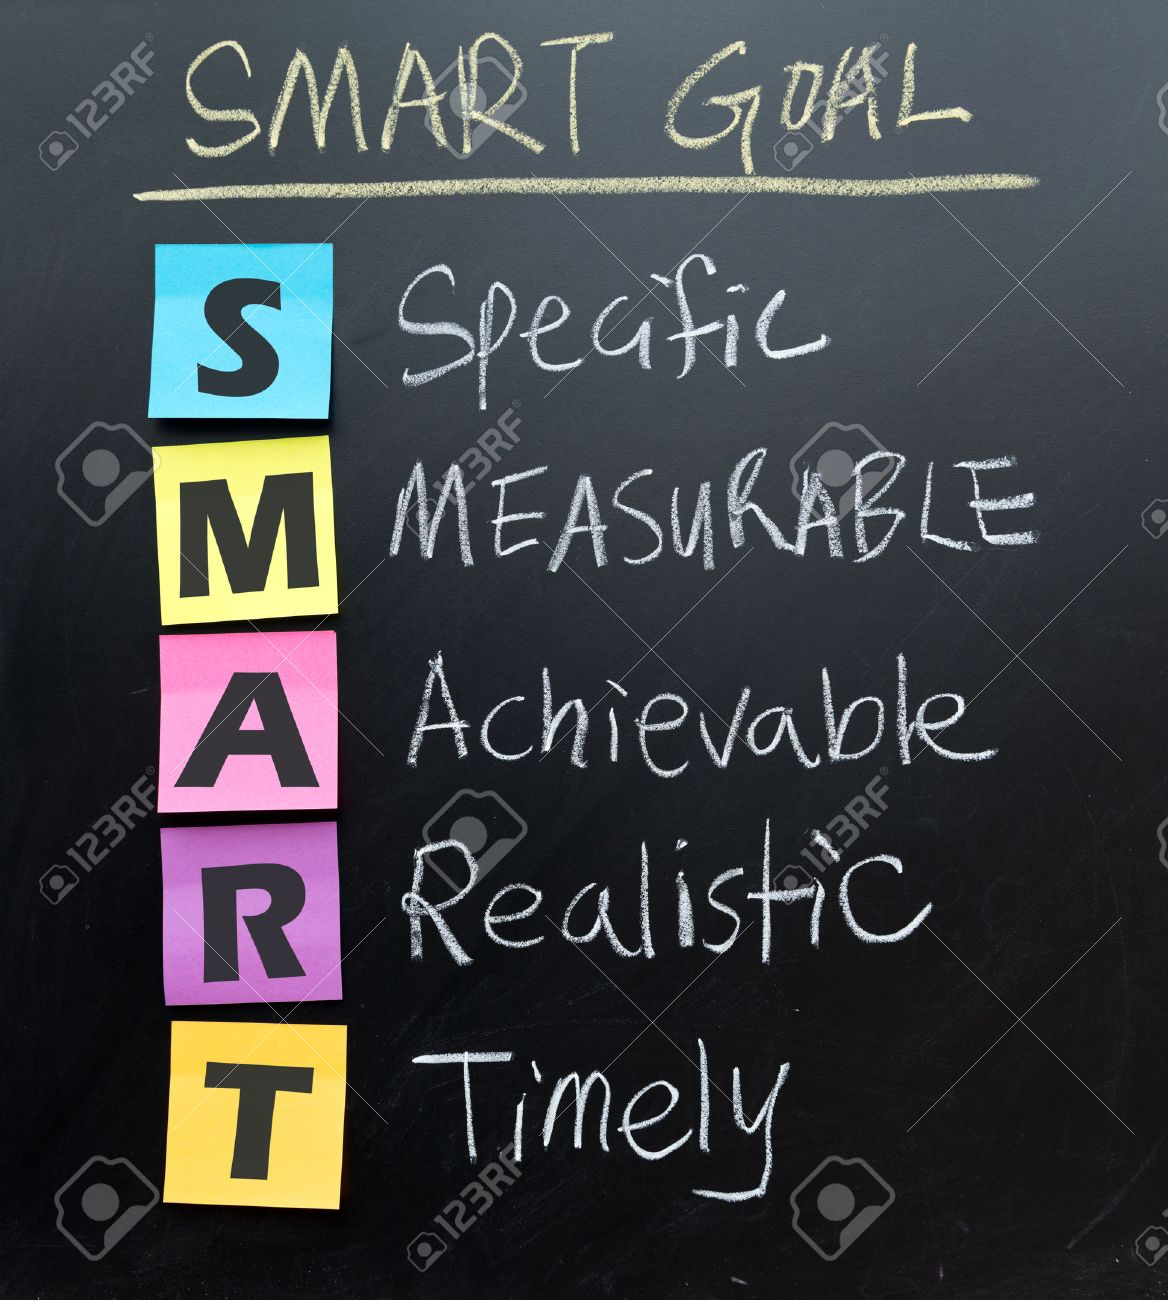 personal goal setting stock photos images royalty personal personal goal setting smart specific measurable acceptable realistic timely